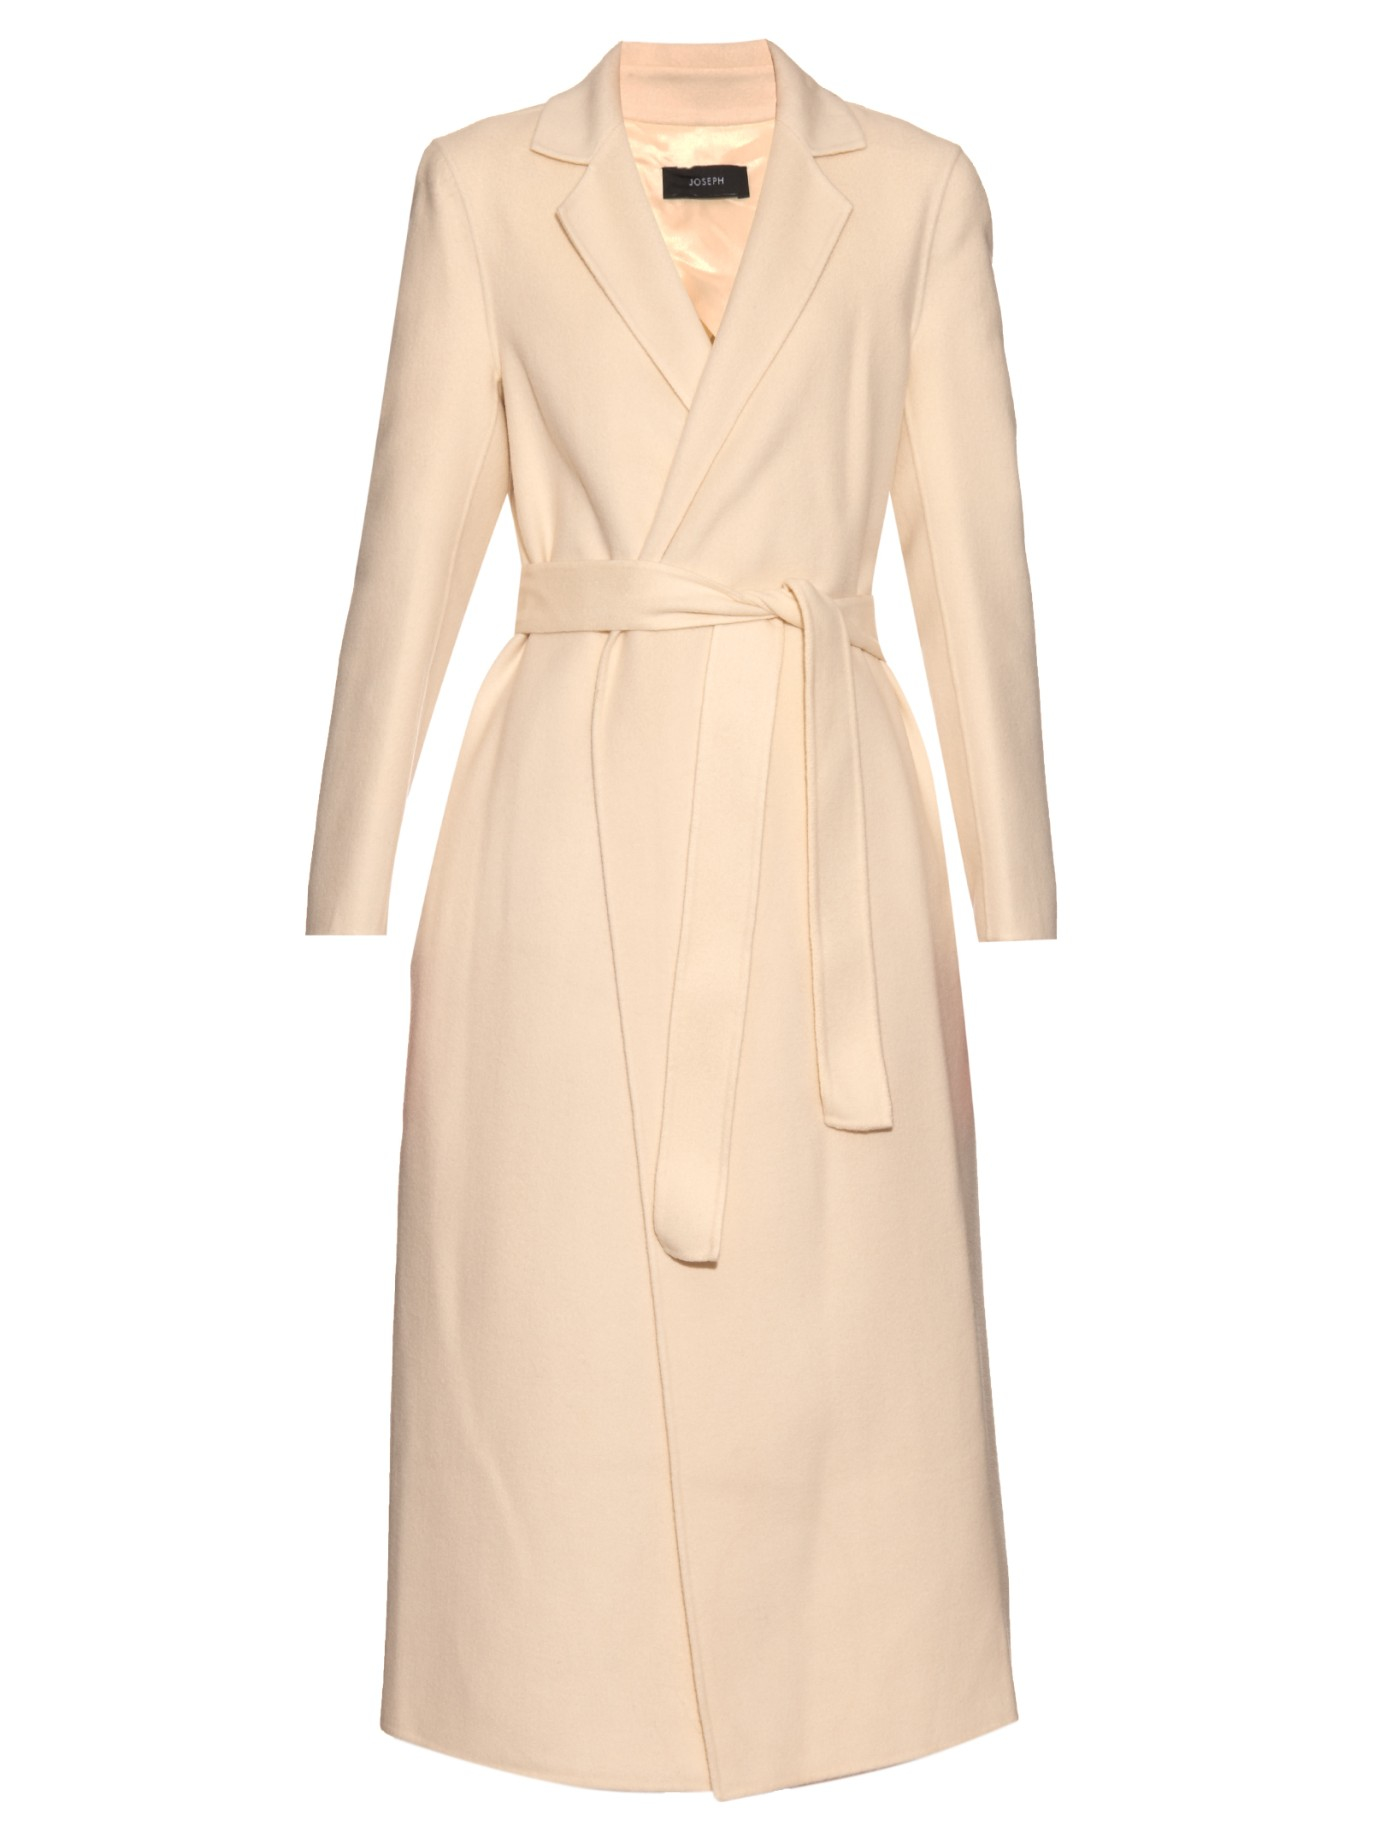 Joseph Kido Wool And Cashmere-blend Coat in White | Lyst